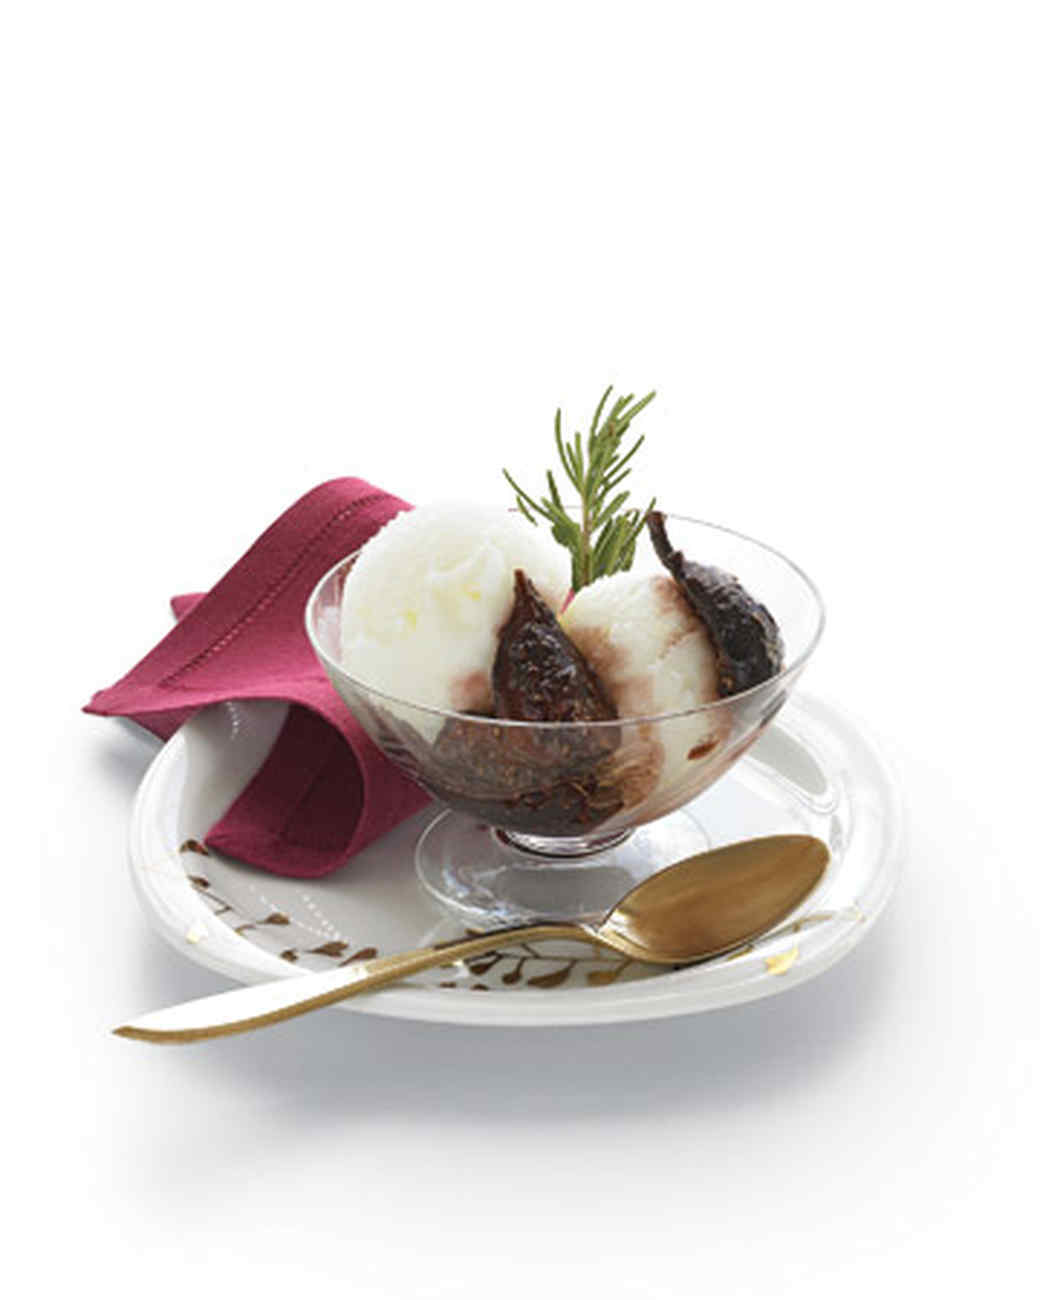 Red Wine and Rosemary Figs with Fromage Blanc Sorbet